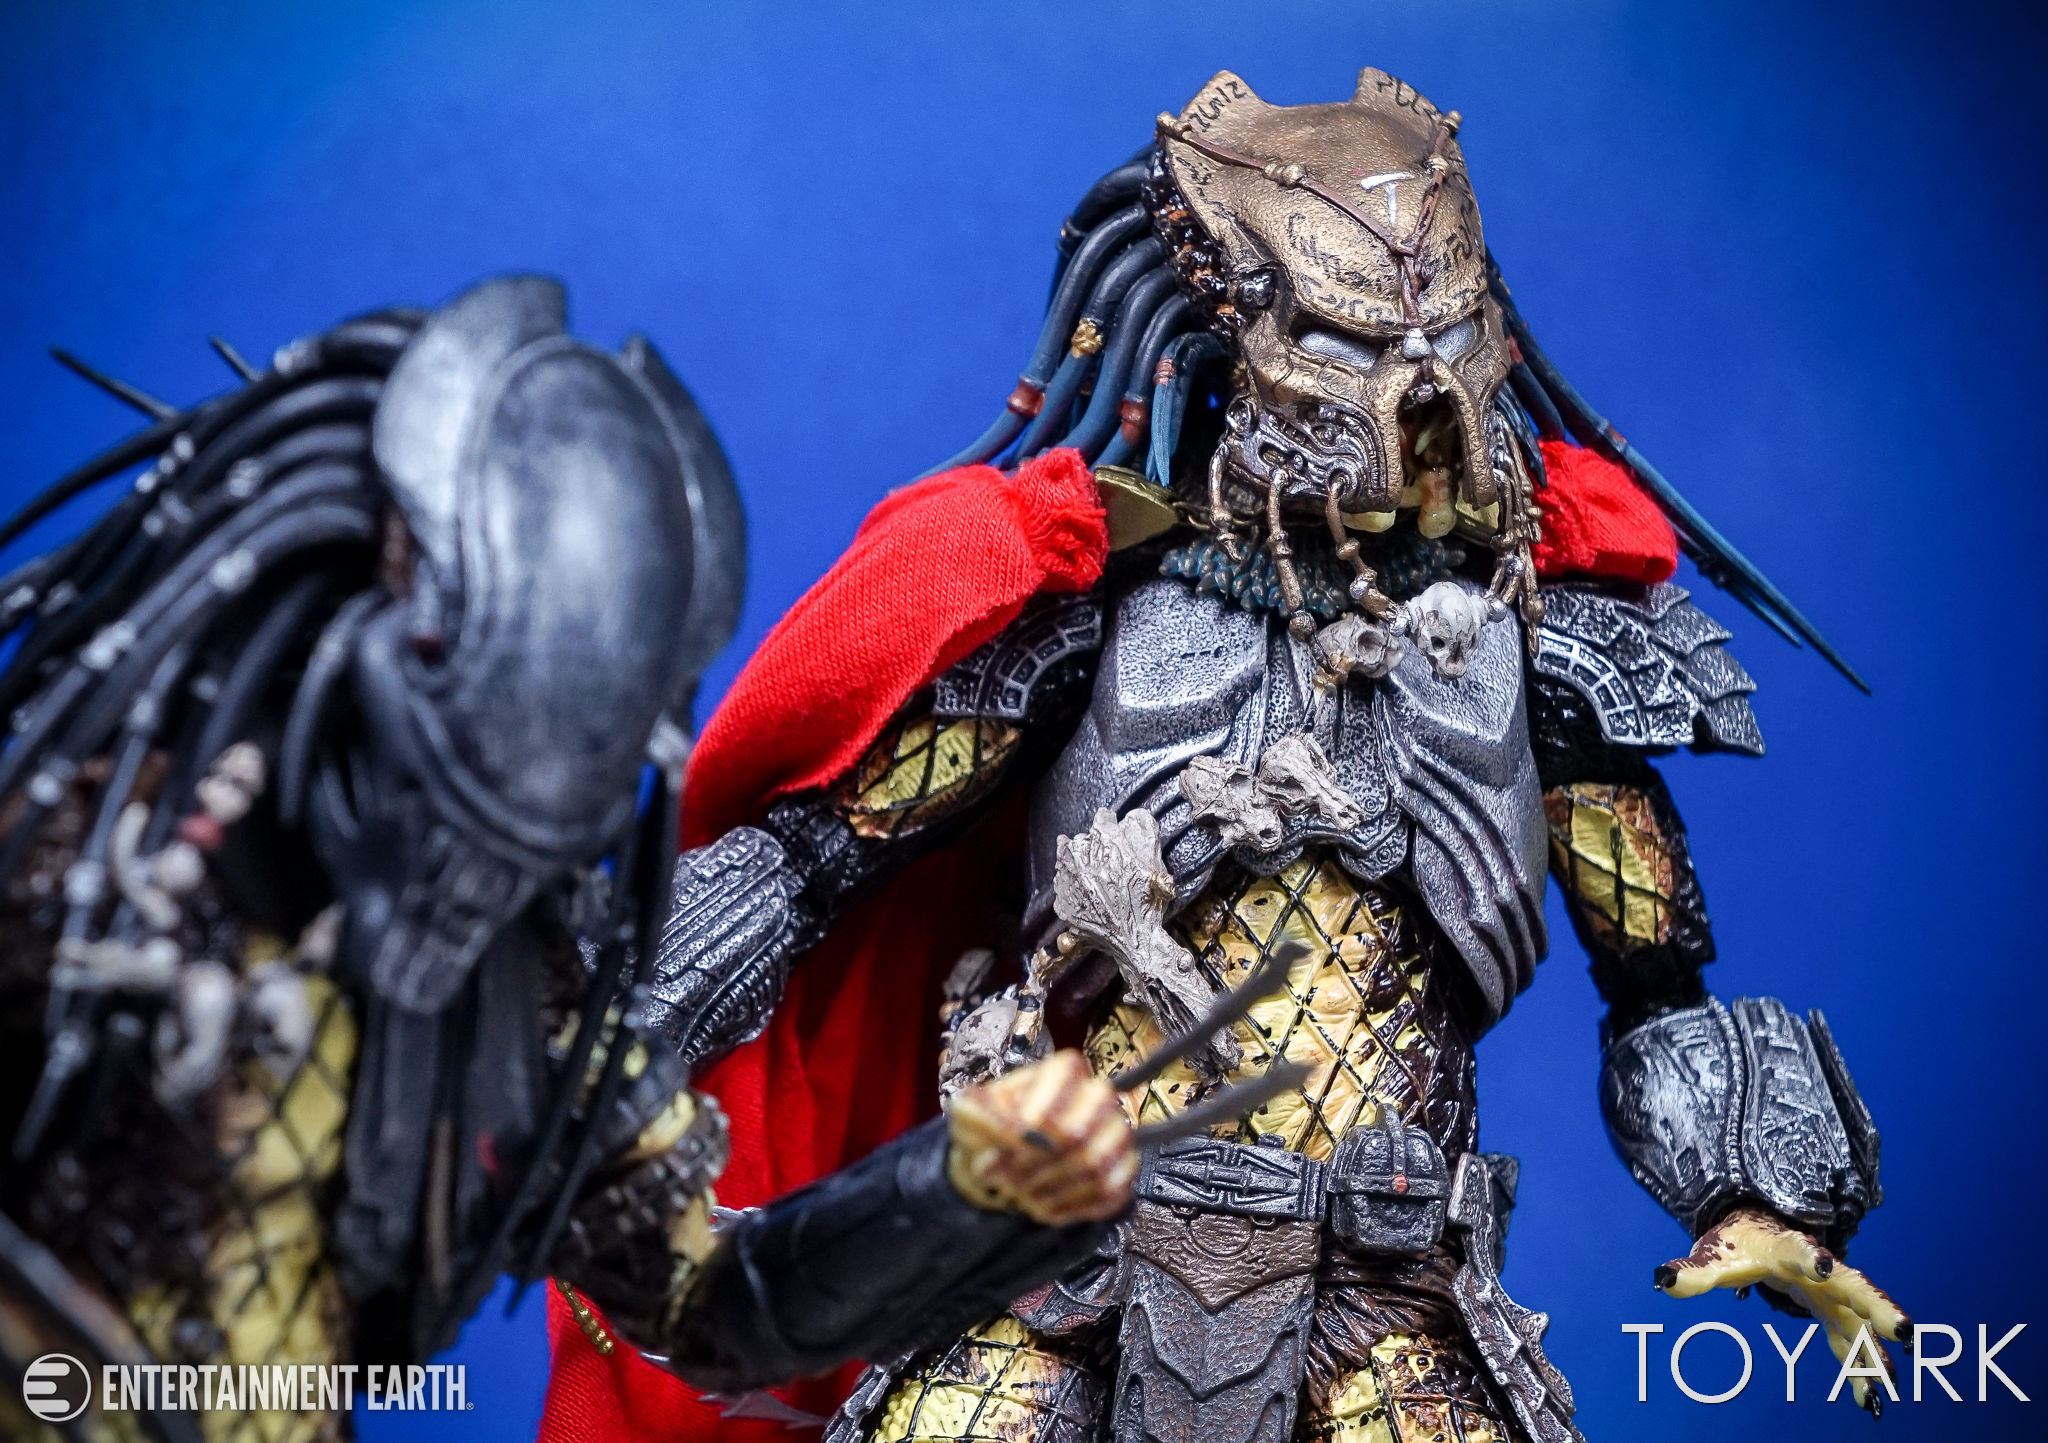 http://news.toyark.com/wp-content/uploads/sites/4/2017/04/NECA-Elder-Predator-039.jpg